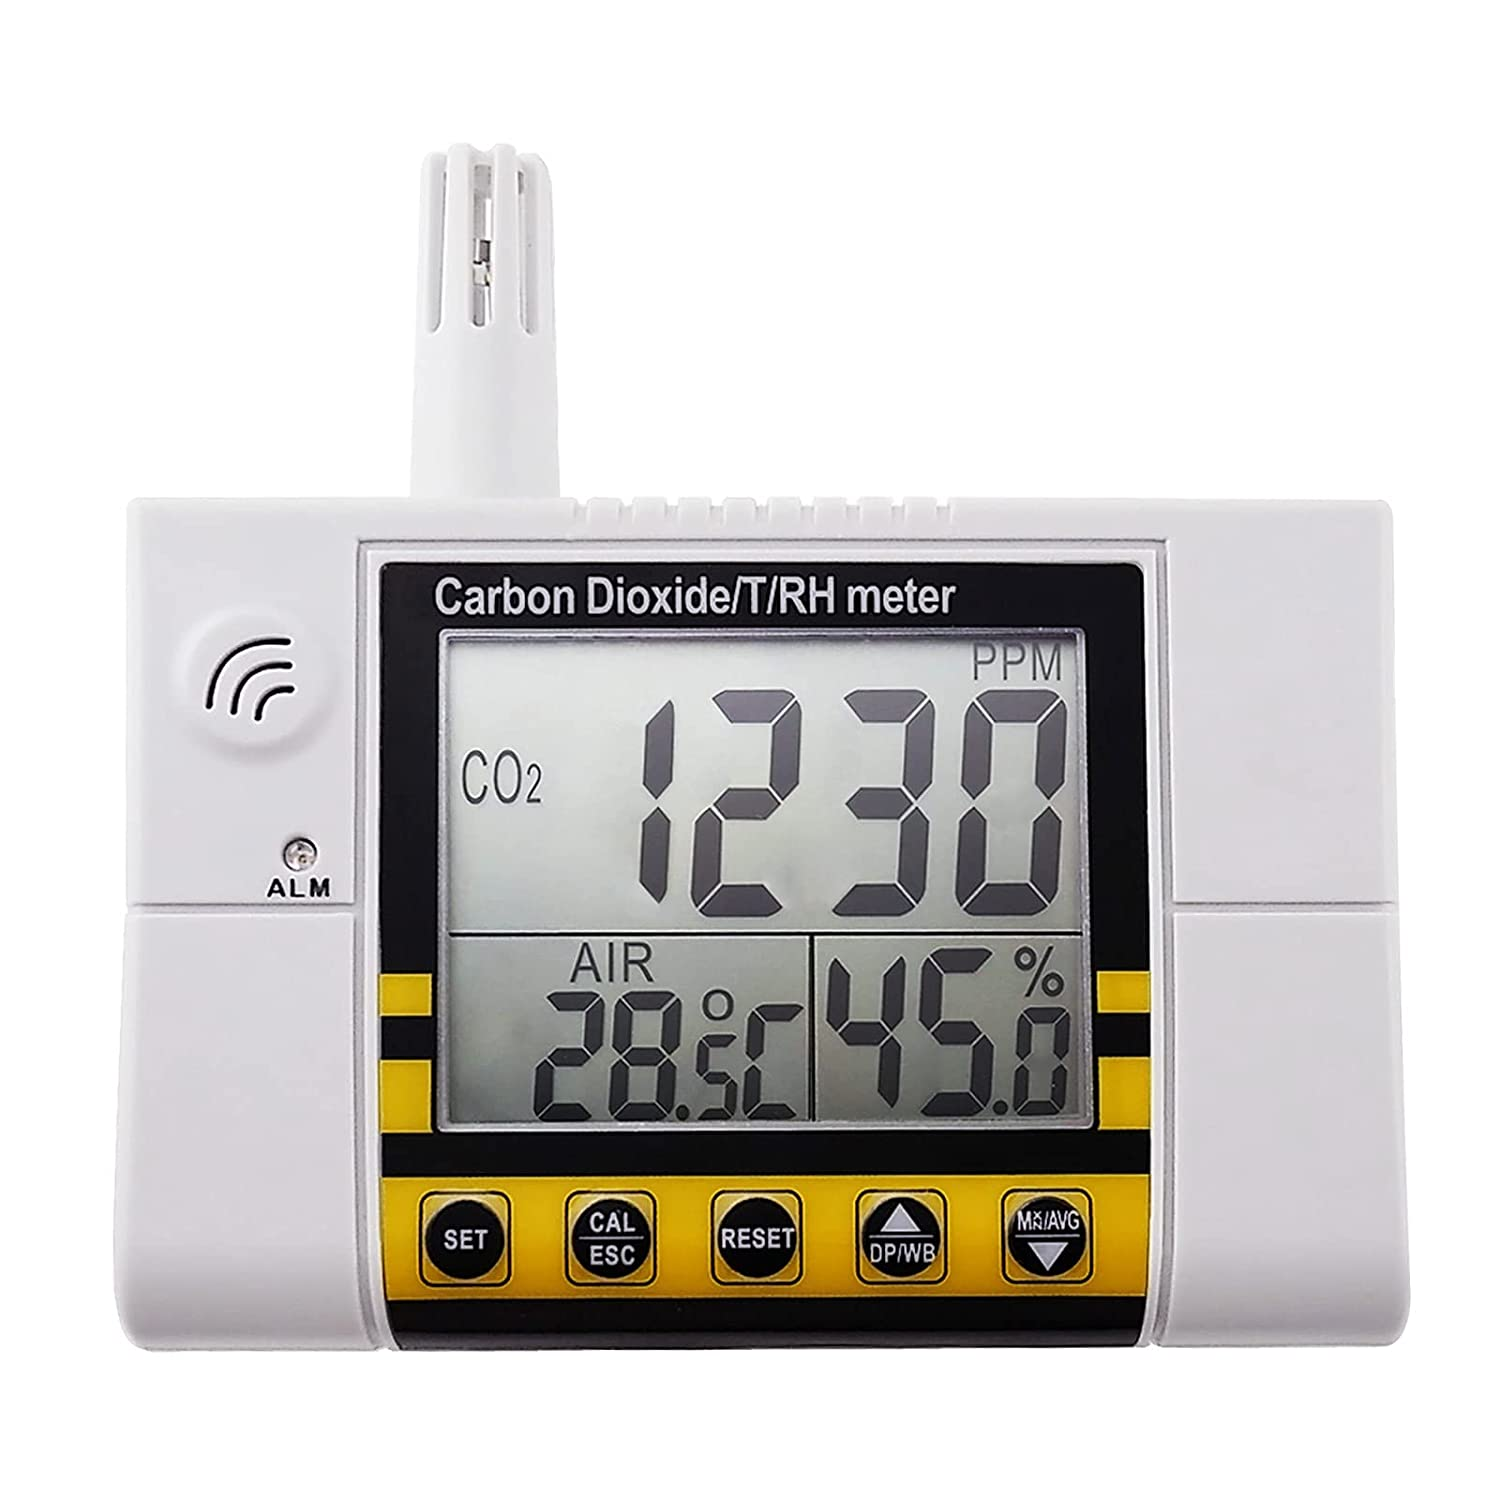 CO2 Monitor Air 70% OFF Outlet Quality for Humidity Temp Dioxide Tulsa Mall Carbon